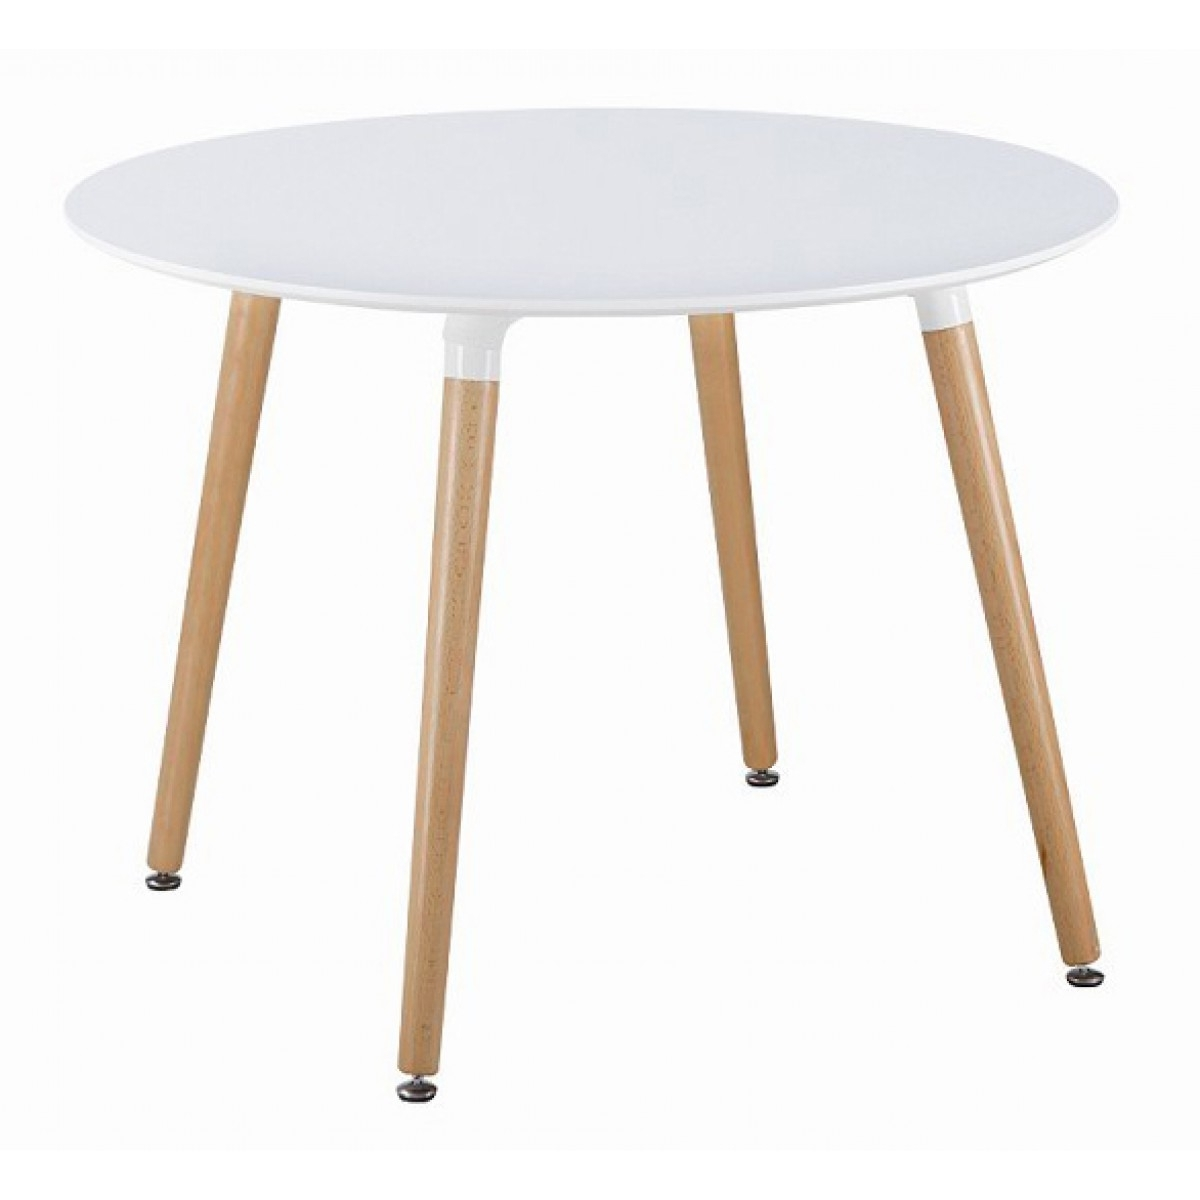 Famous White Circle Dining Tables Throughout Eames Style Dsw White Round Dining Table (View 12 of 25)